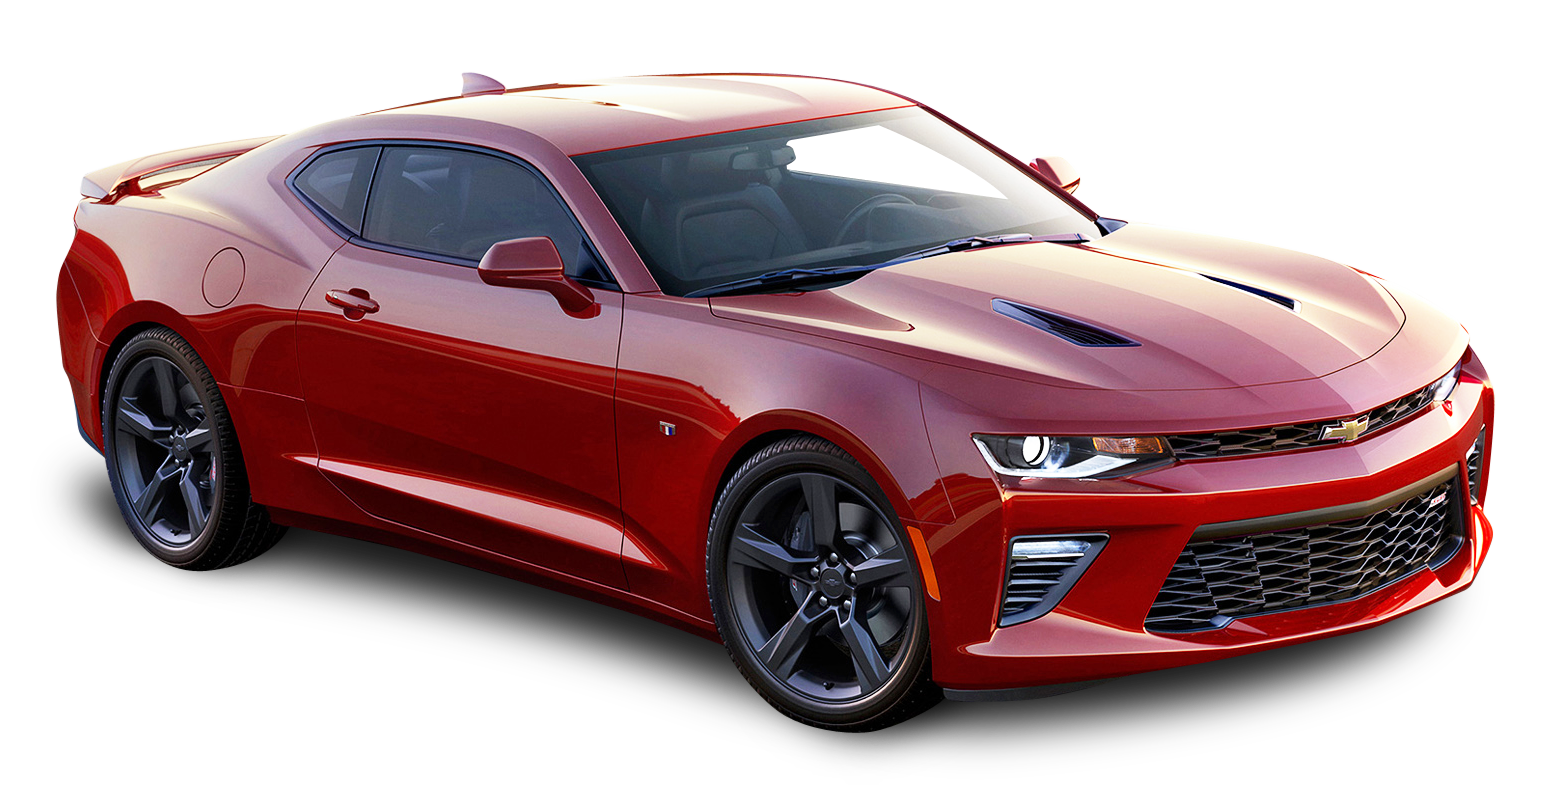 Chevrolet Camaro Png Image For Free Download